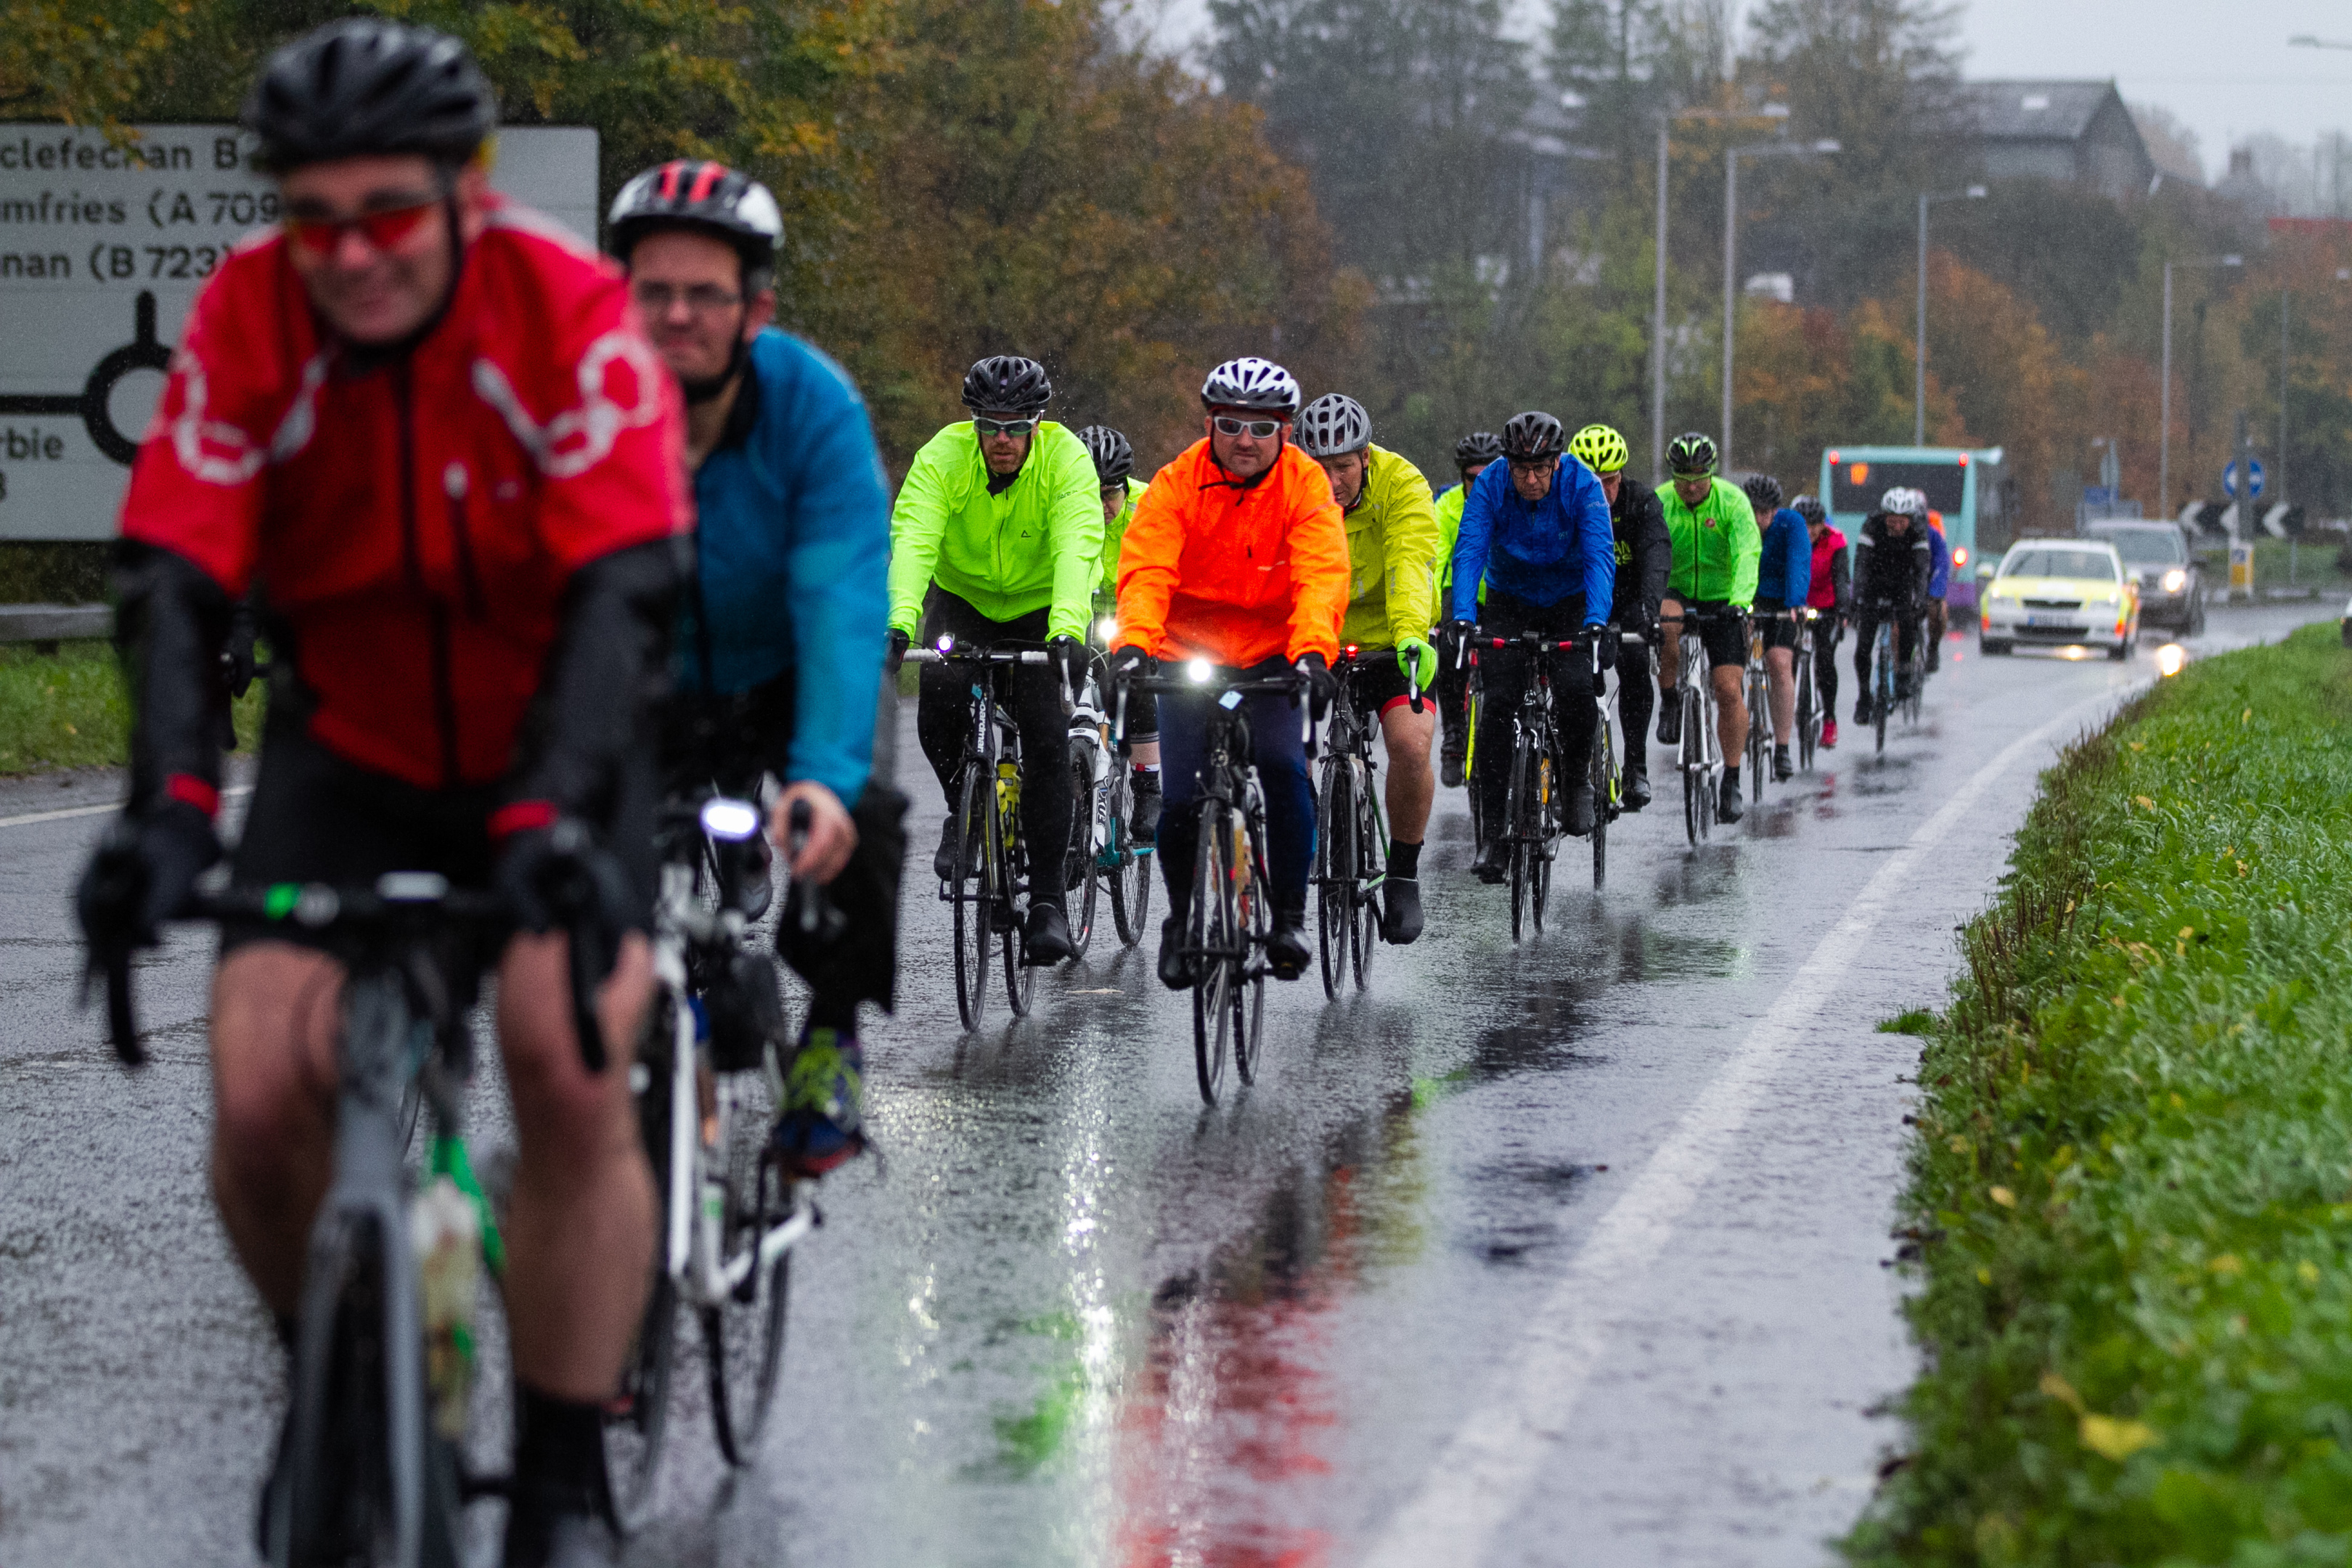 Cyclists take part in the event (Andrew Cawley / DCT Media)